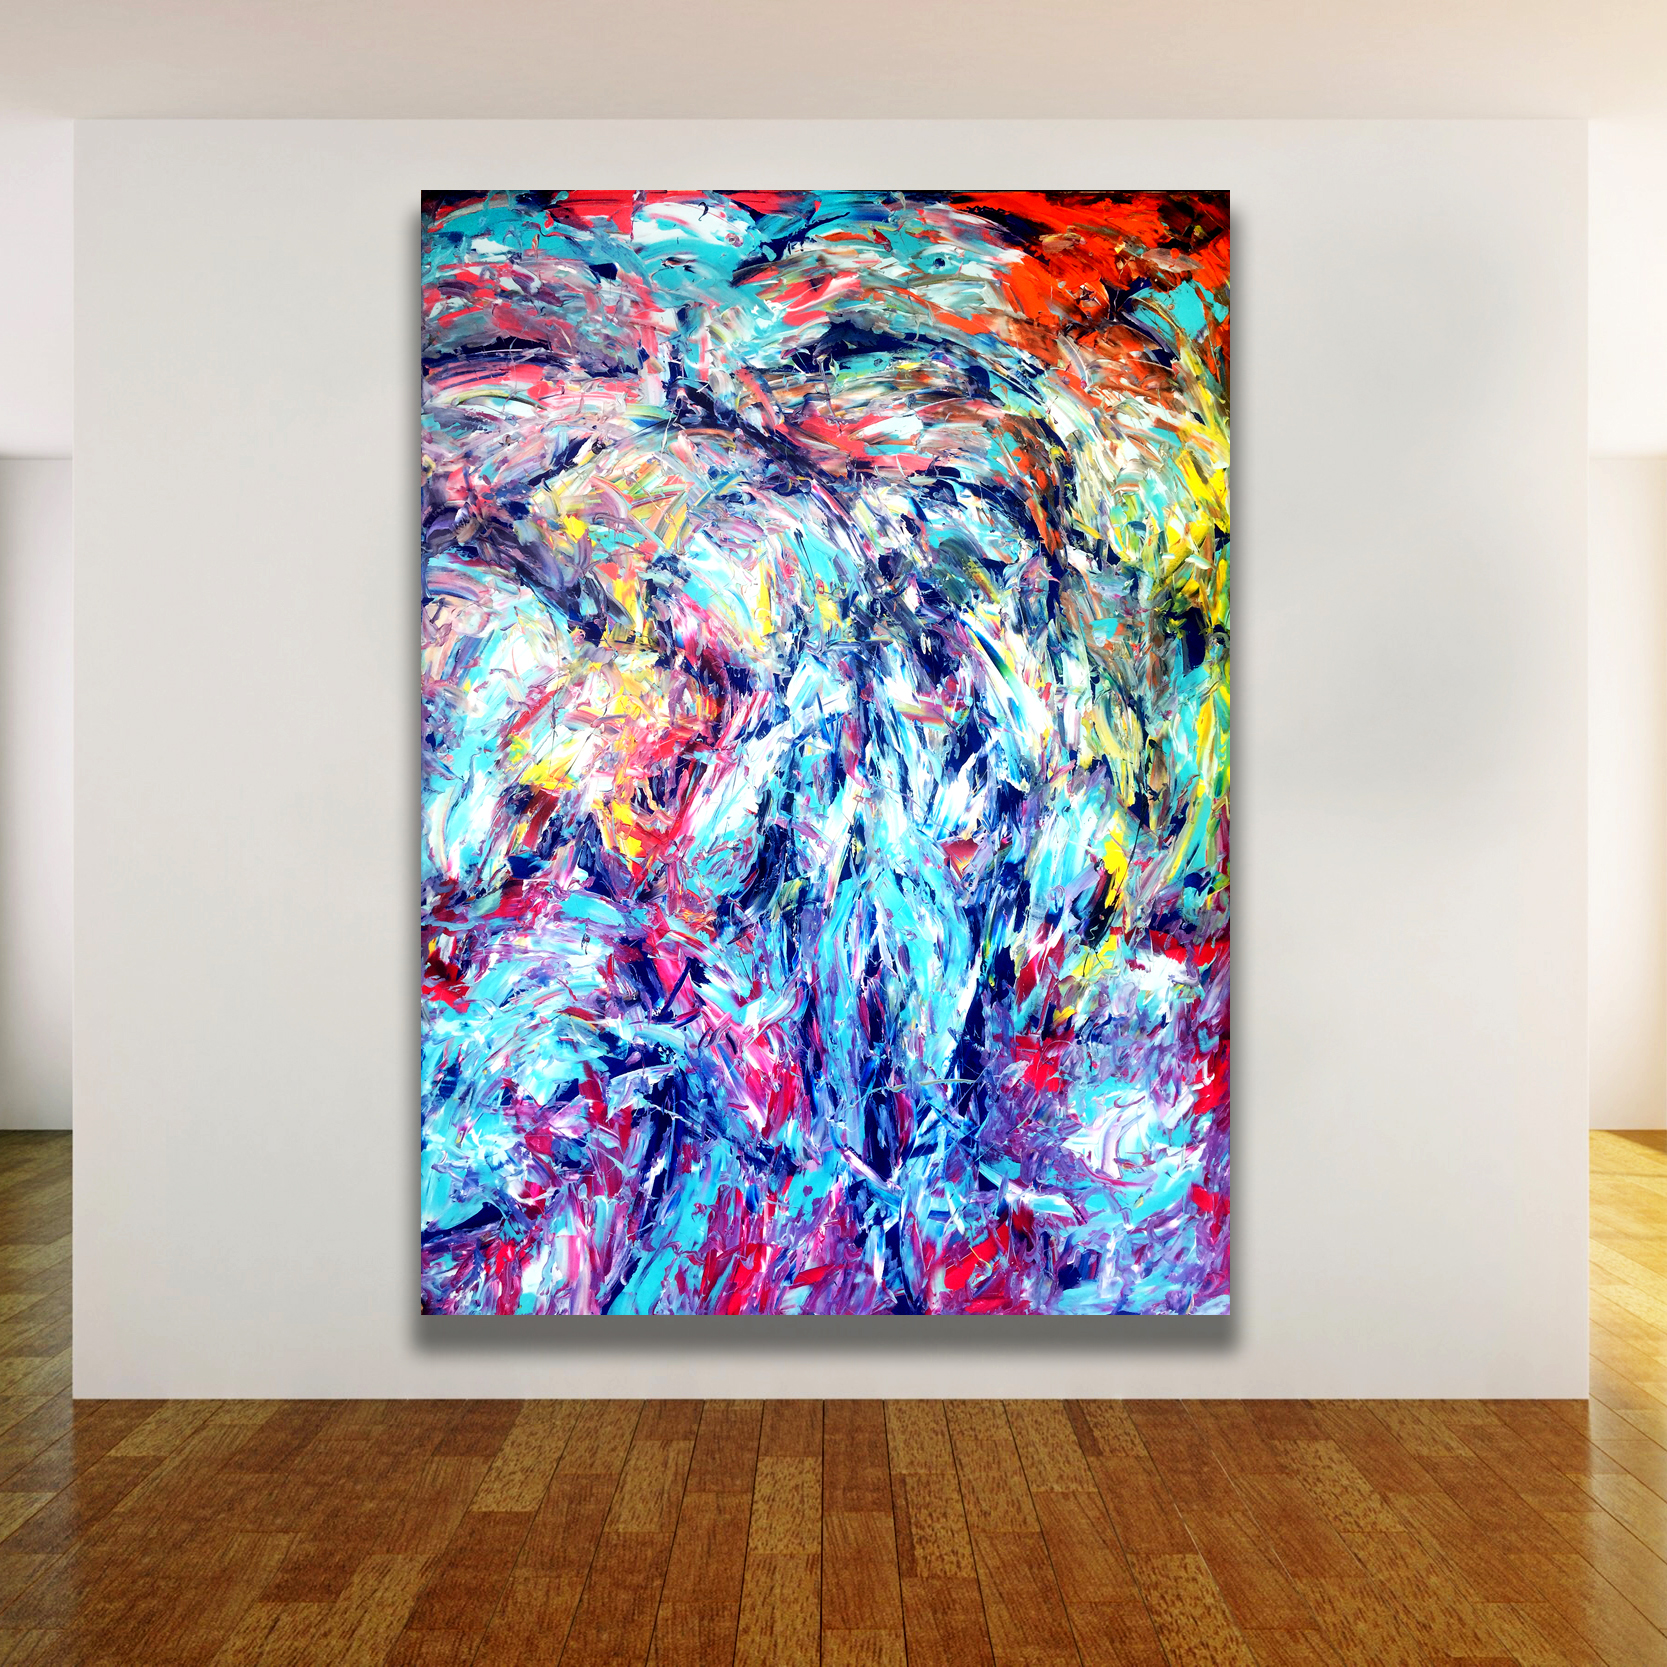 Gilgamesh king of Uruk - Abstract Expressionism by Estelle Asmodelle